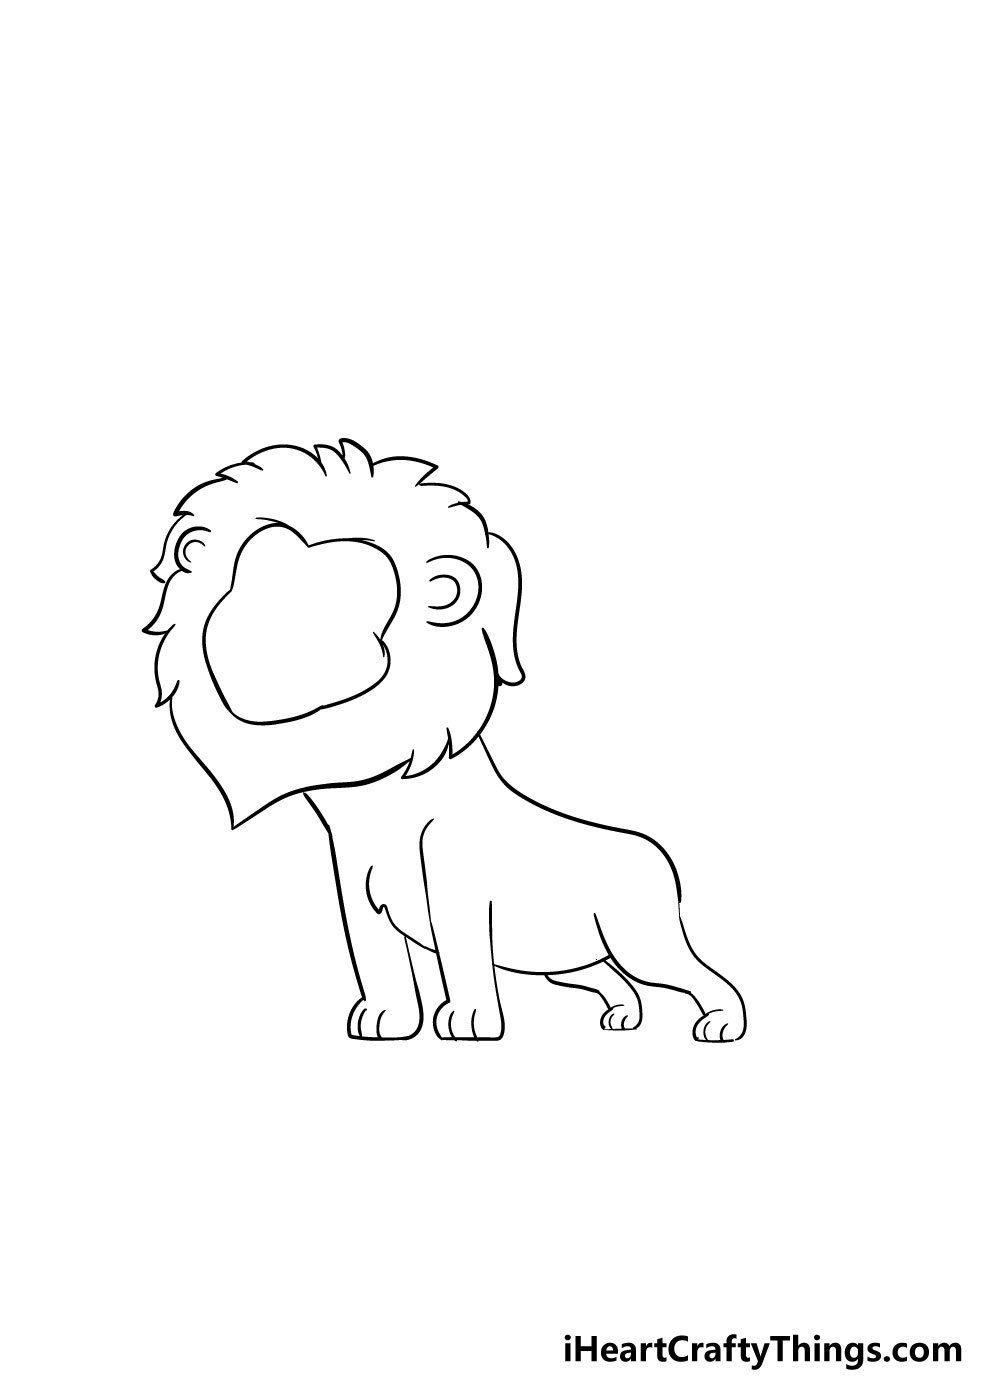 lion drawing step 5